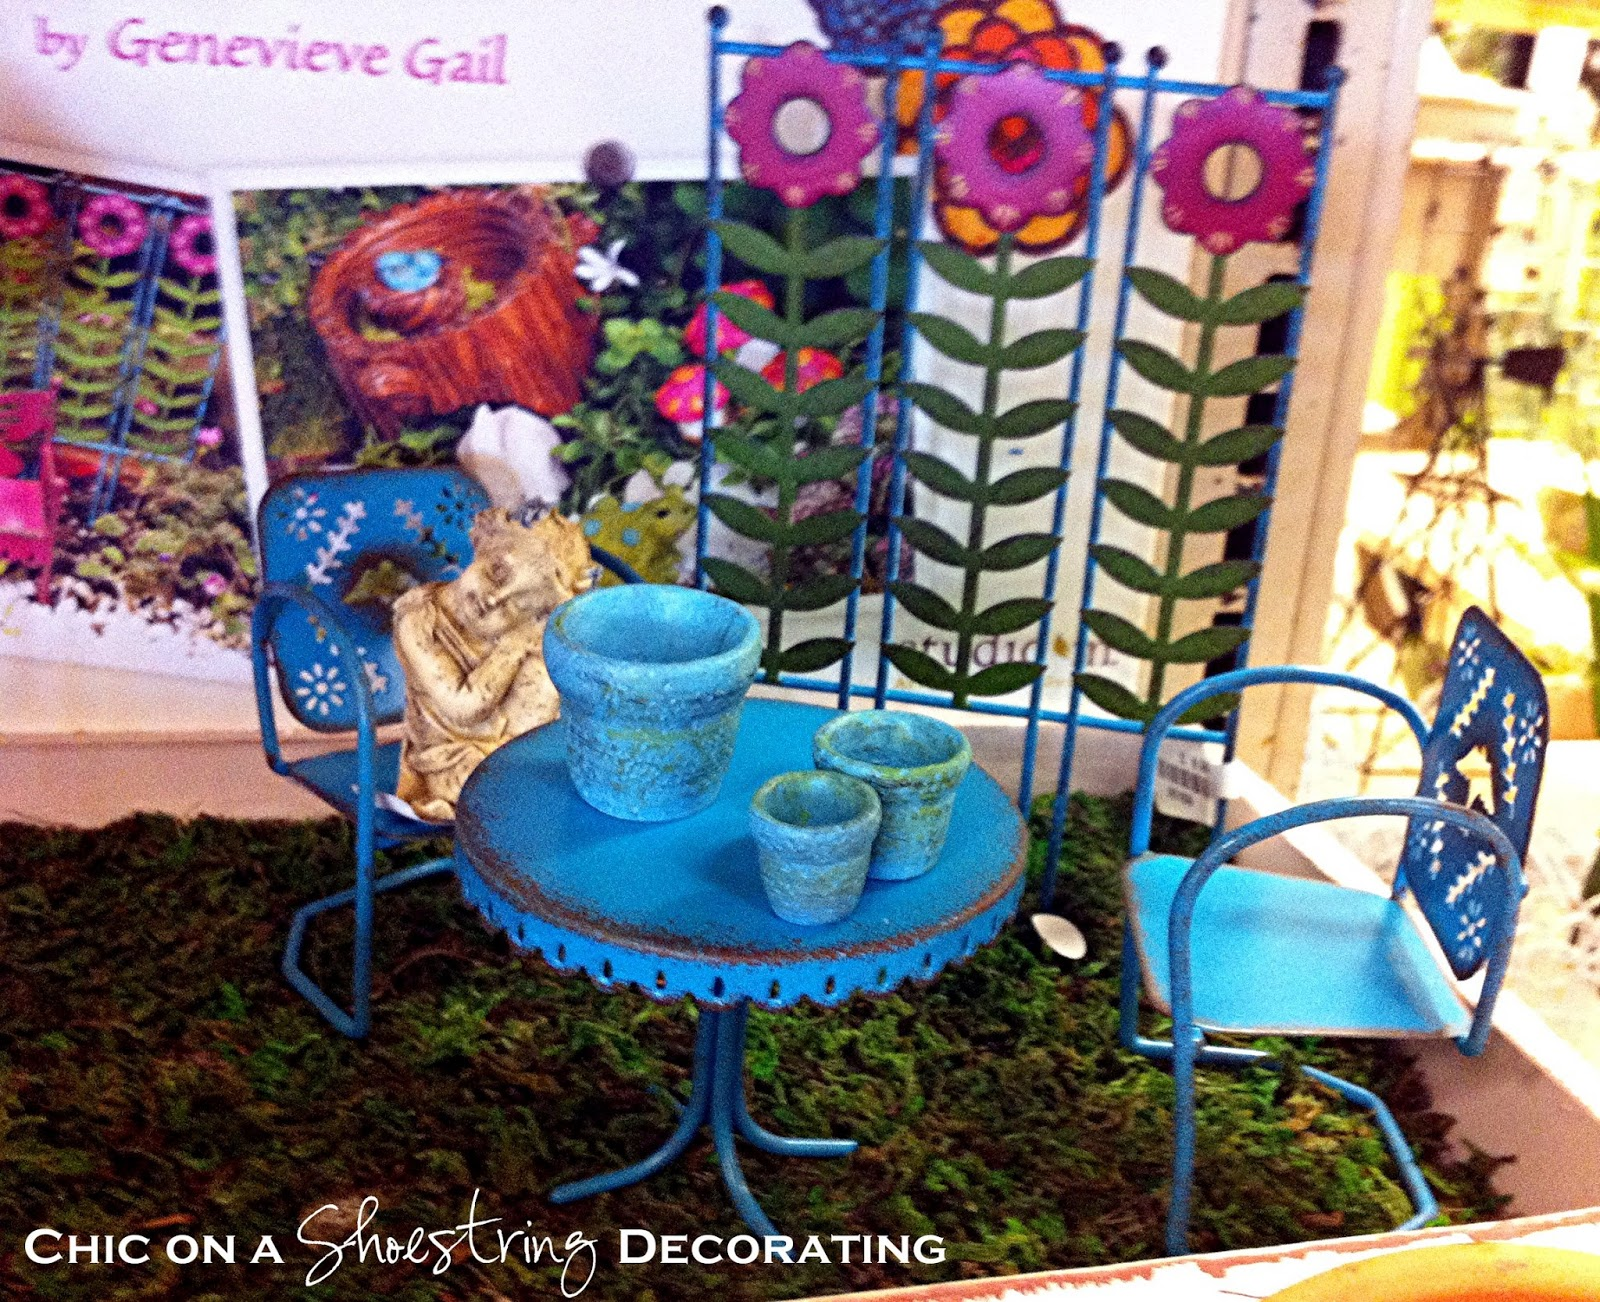 chic on a shoestring decorating fairy gardens that 39 s